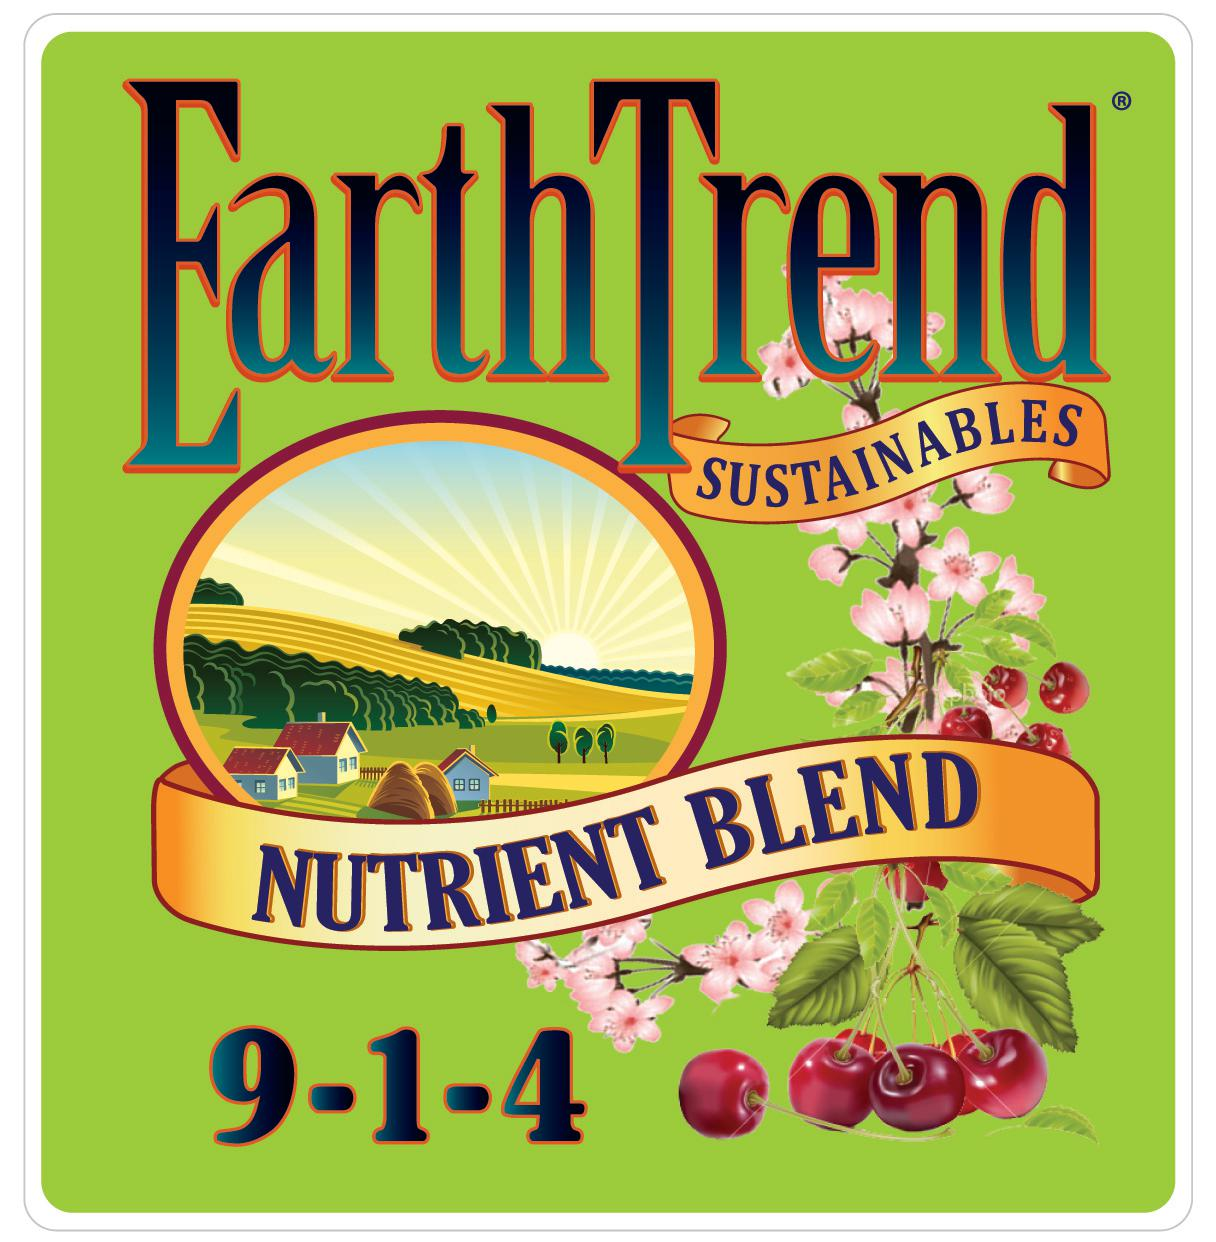 earthtrend nutrients